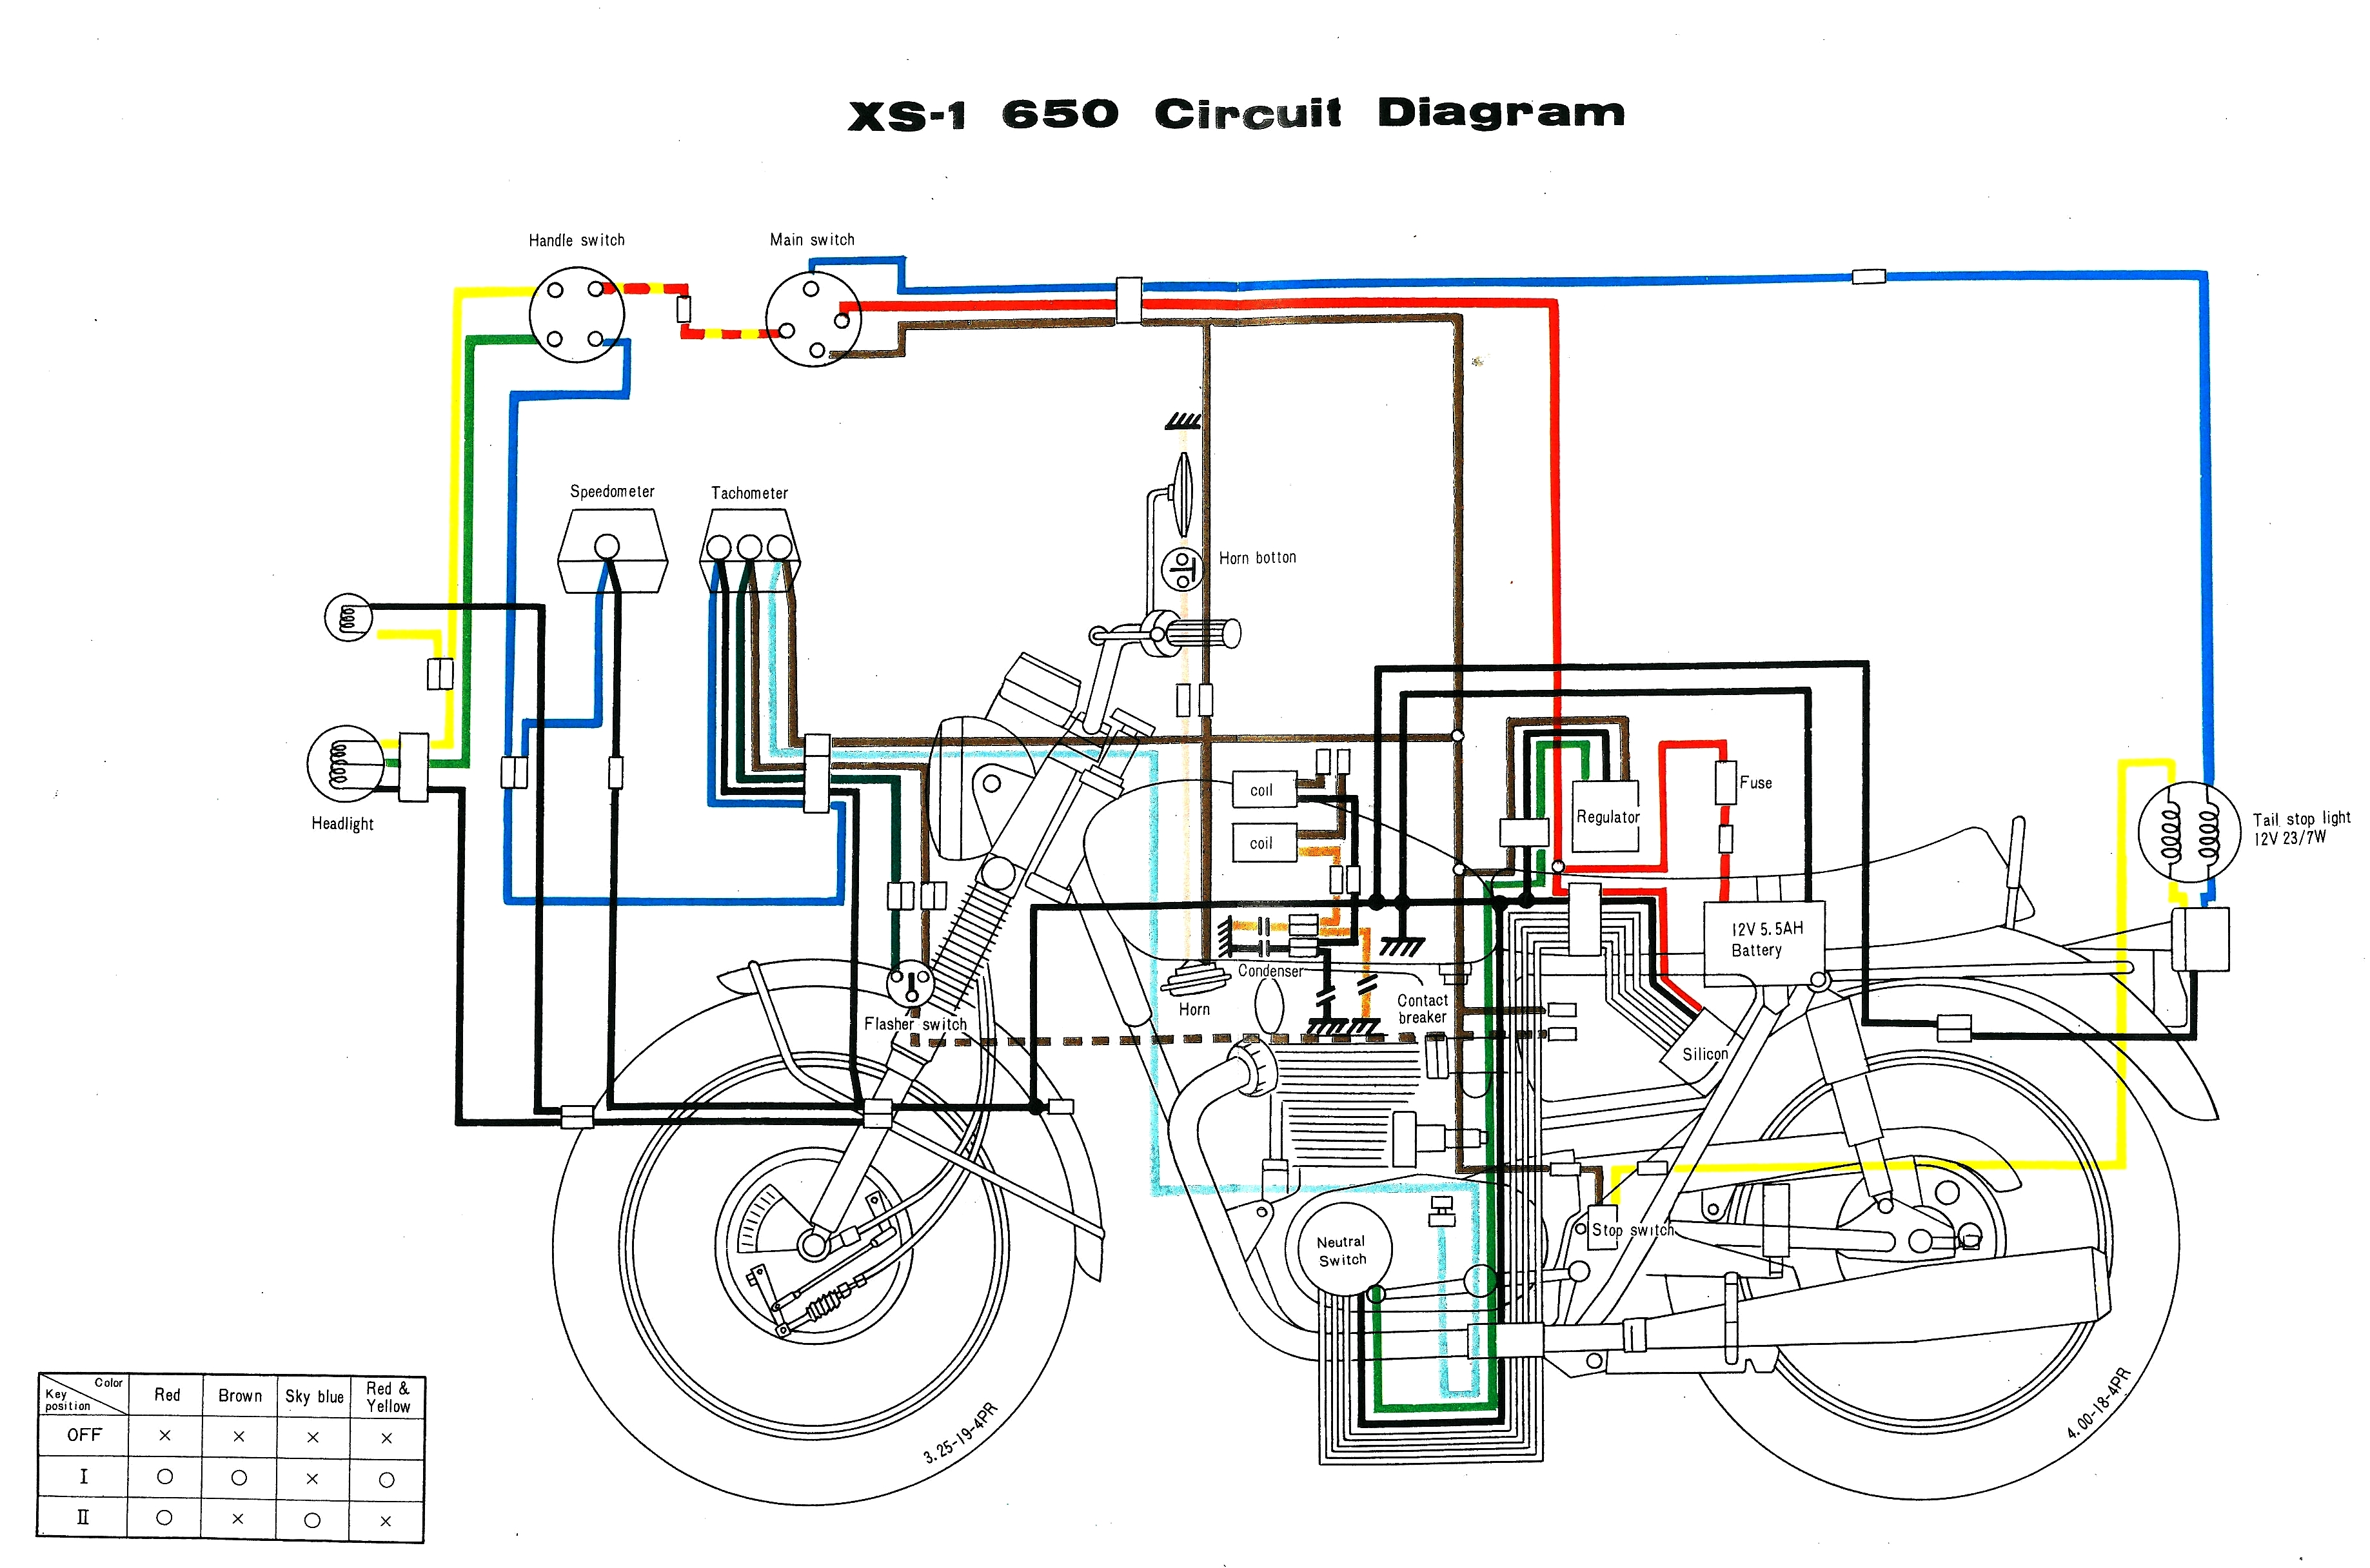 1977 Yamaha Xs 650 Wiring Diagram Electrical Schematics 12 Volt Triumph Schematic Xs650 Harness All Kind Of Diagrams U2022